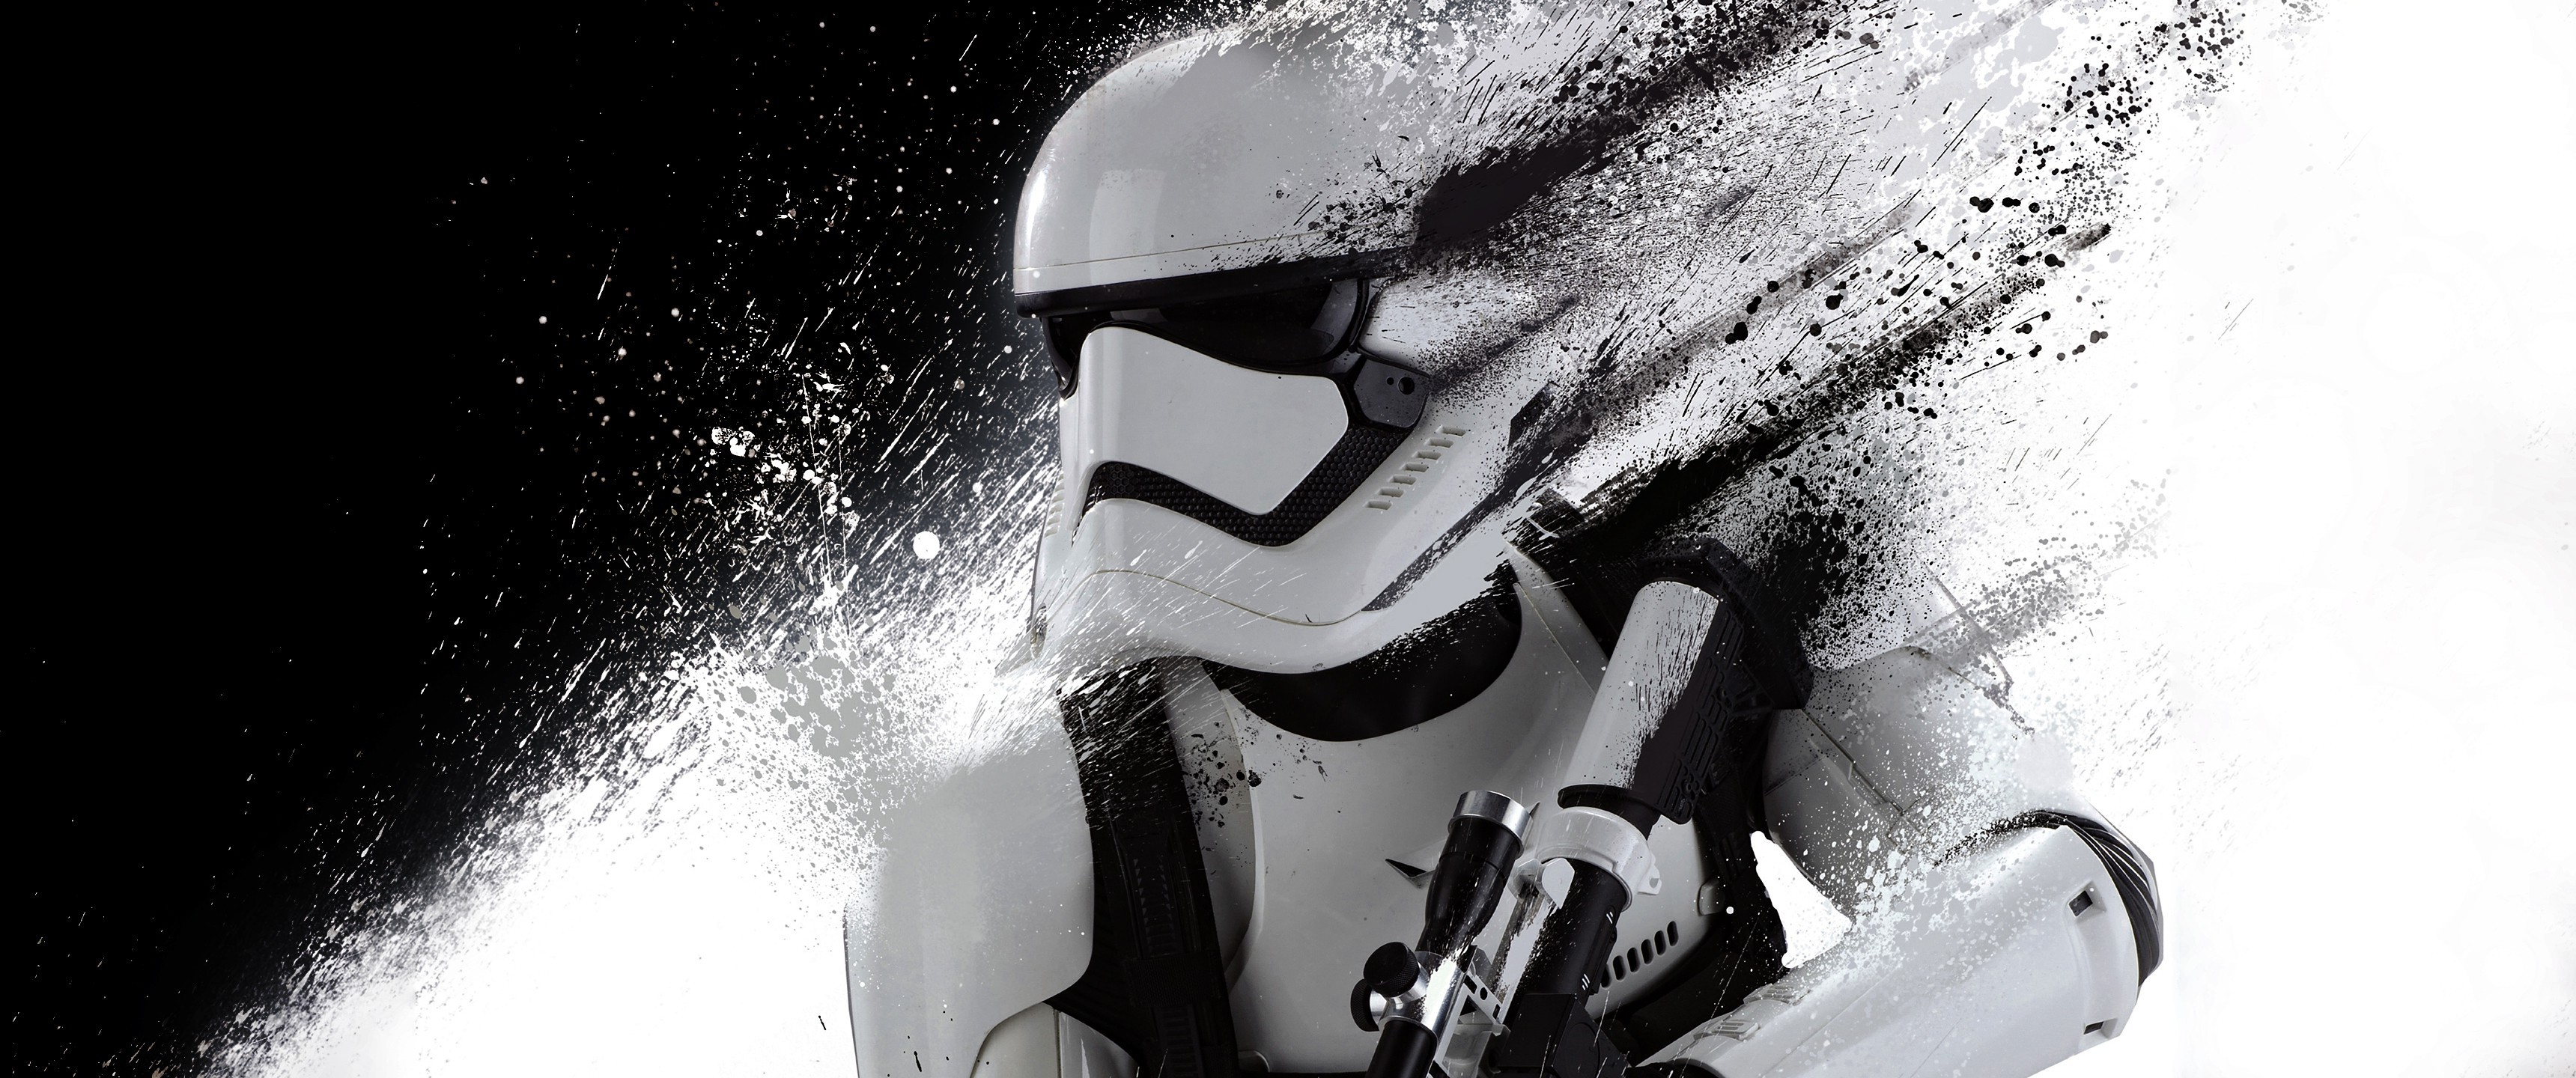 Star Wars, Multiple Display, Dual Monitors, Monochrome, Stormtrooper  Wallpapers HD / Desktop and Mobile Backgrounds